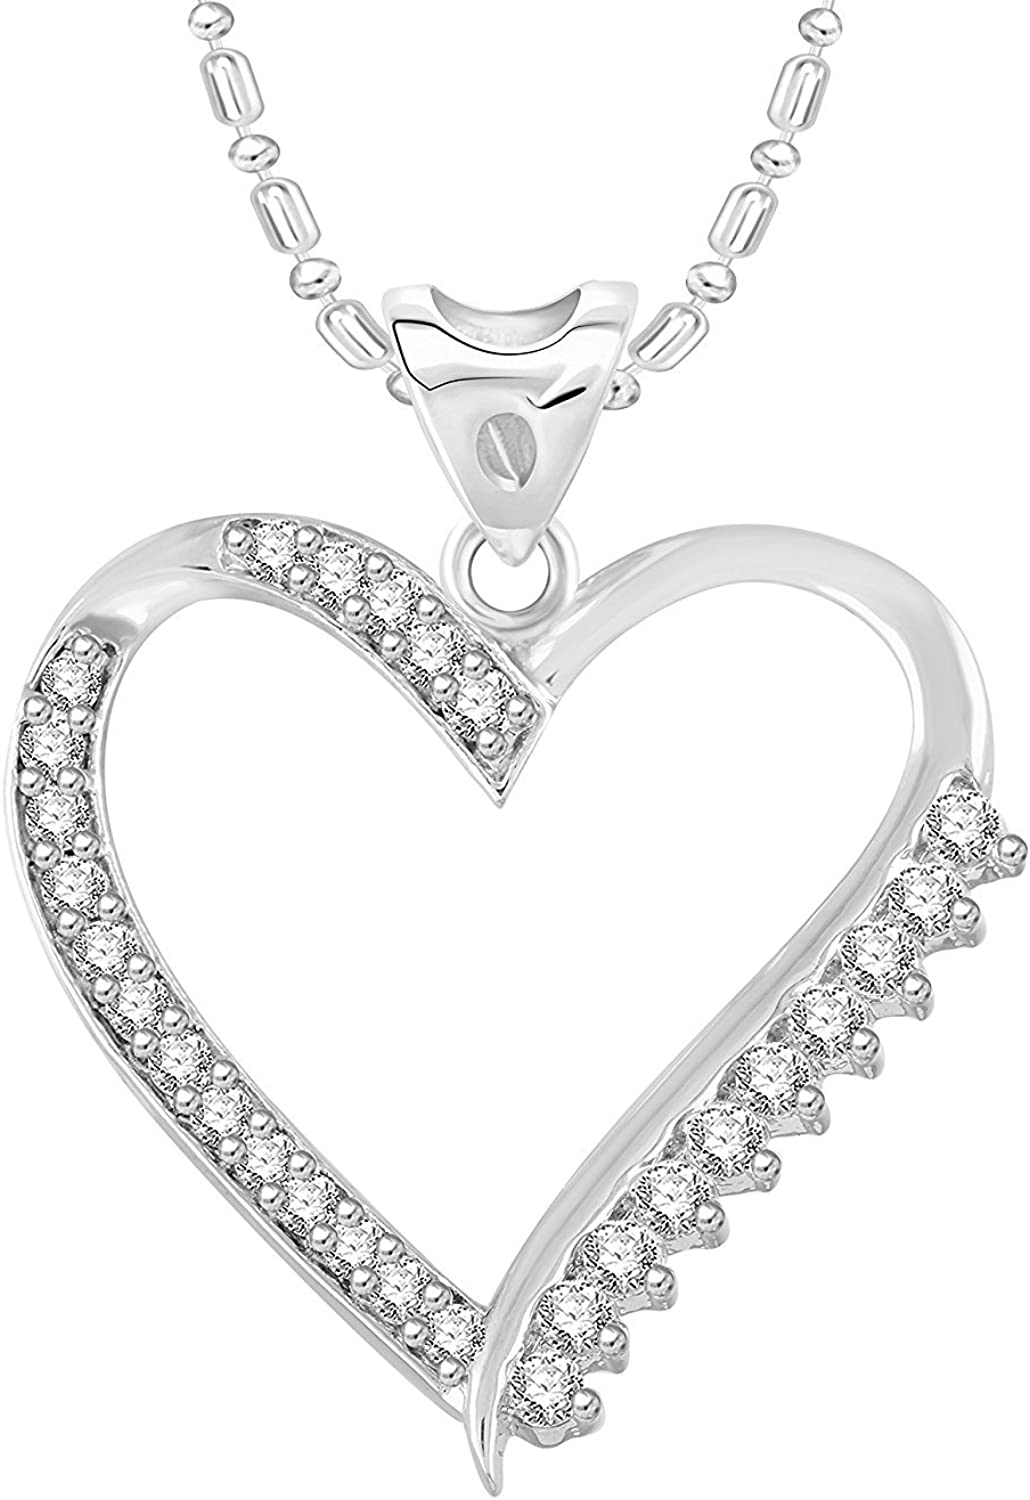 Ashley Jewels Simulated Diamond Studded Classic Designed Pendant Necklace in 14K White Gold Plated With Box Chain